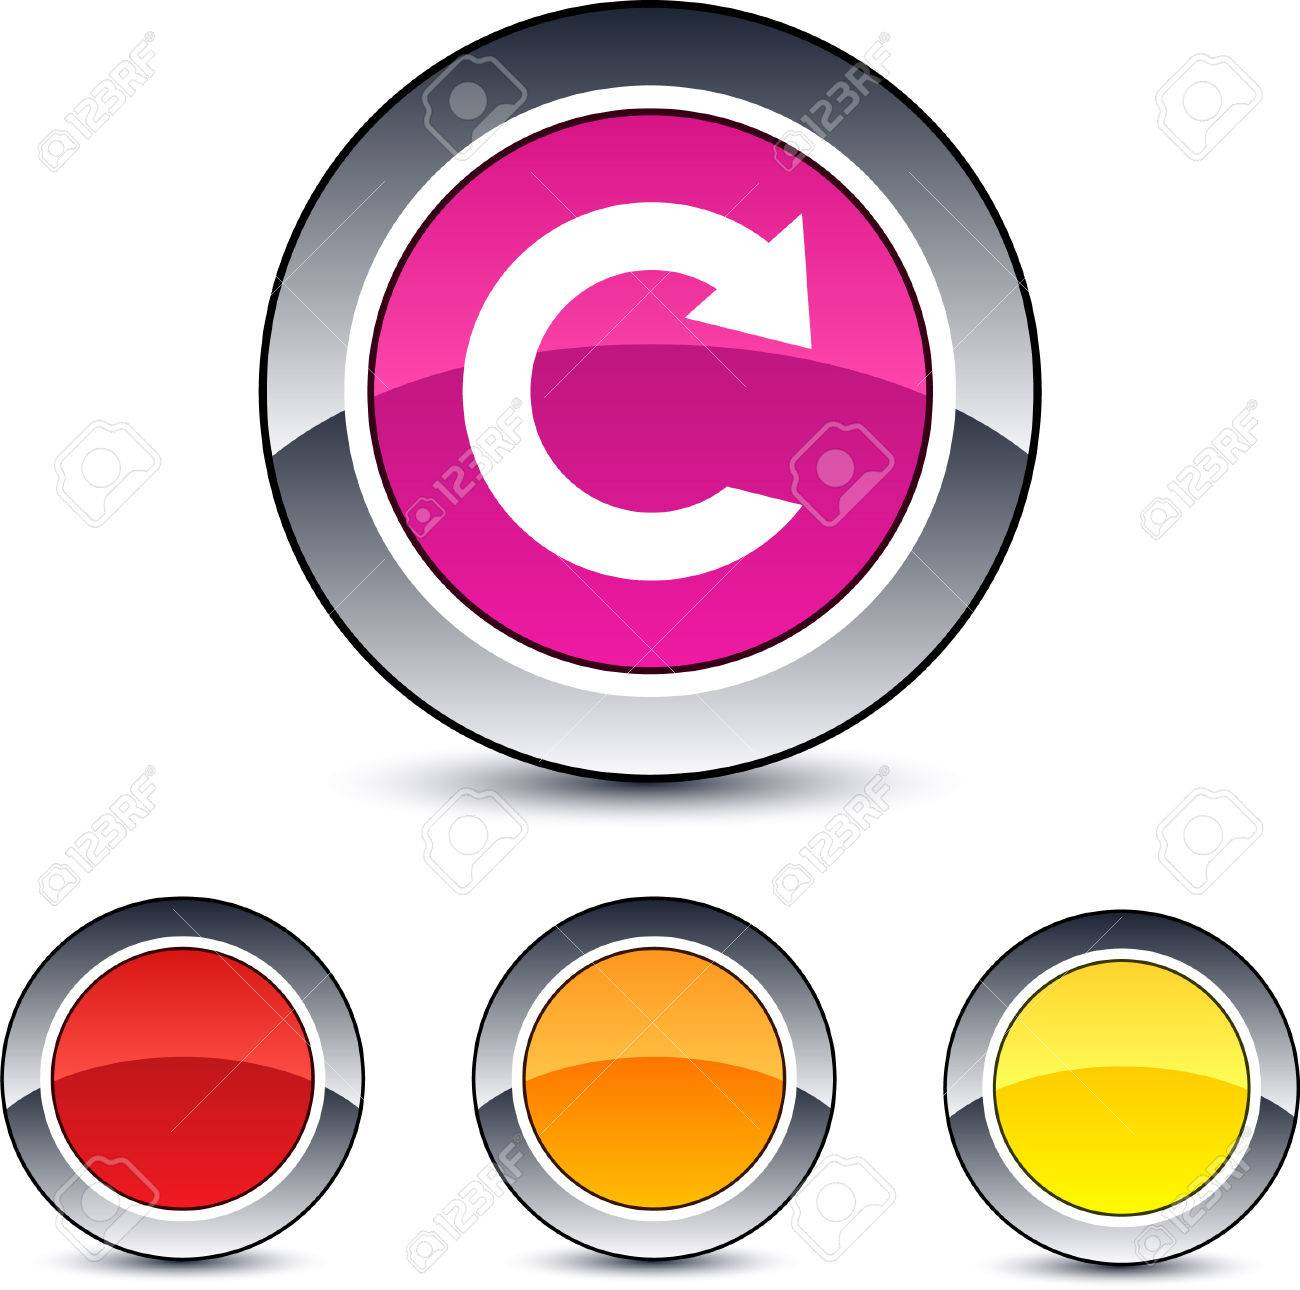 Reload glossy round web buttons. Stock Vector - 7076435